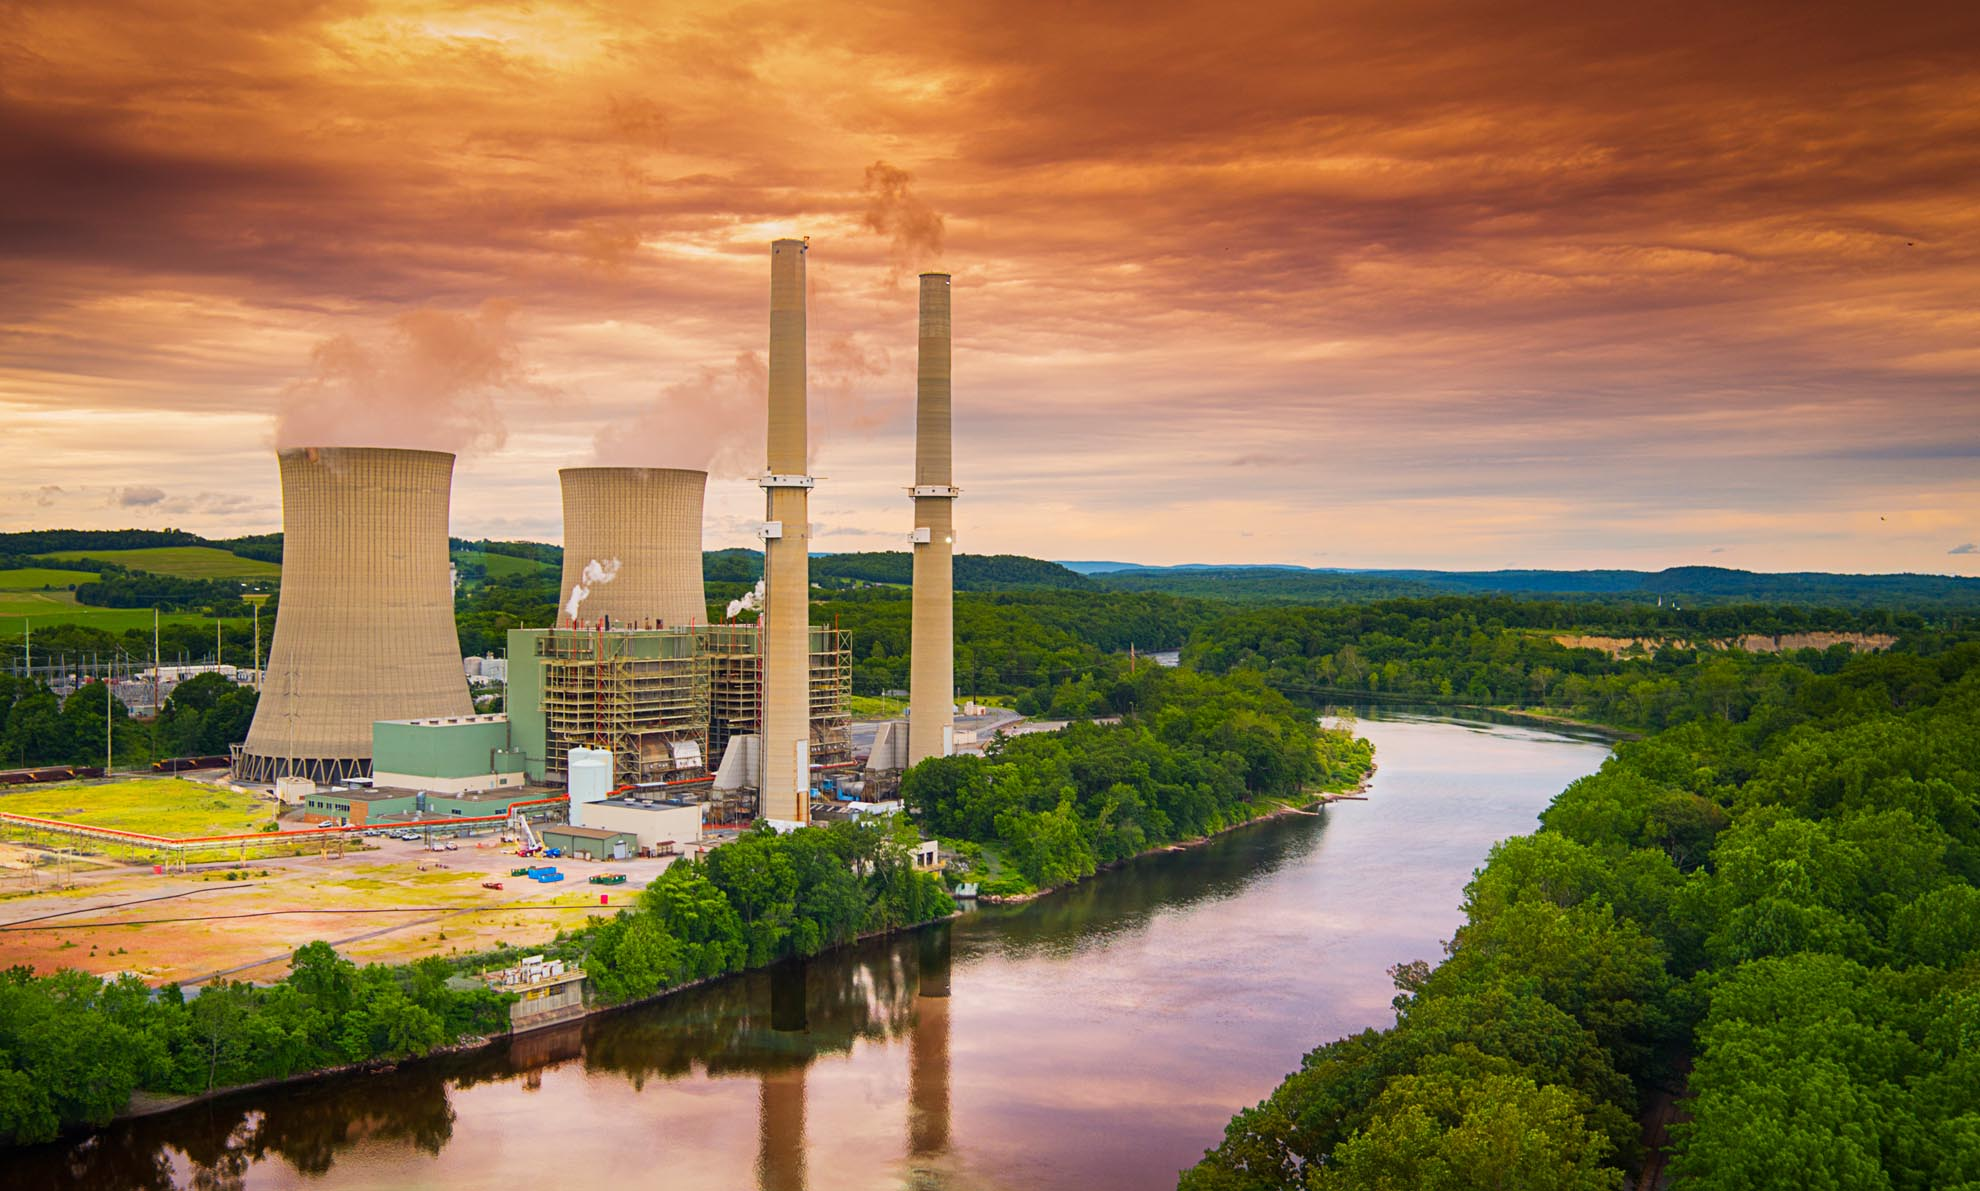 Drone Photograph of Martins Creek Power Plant PA